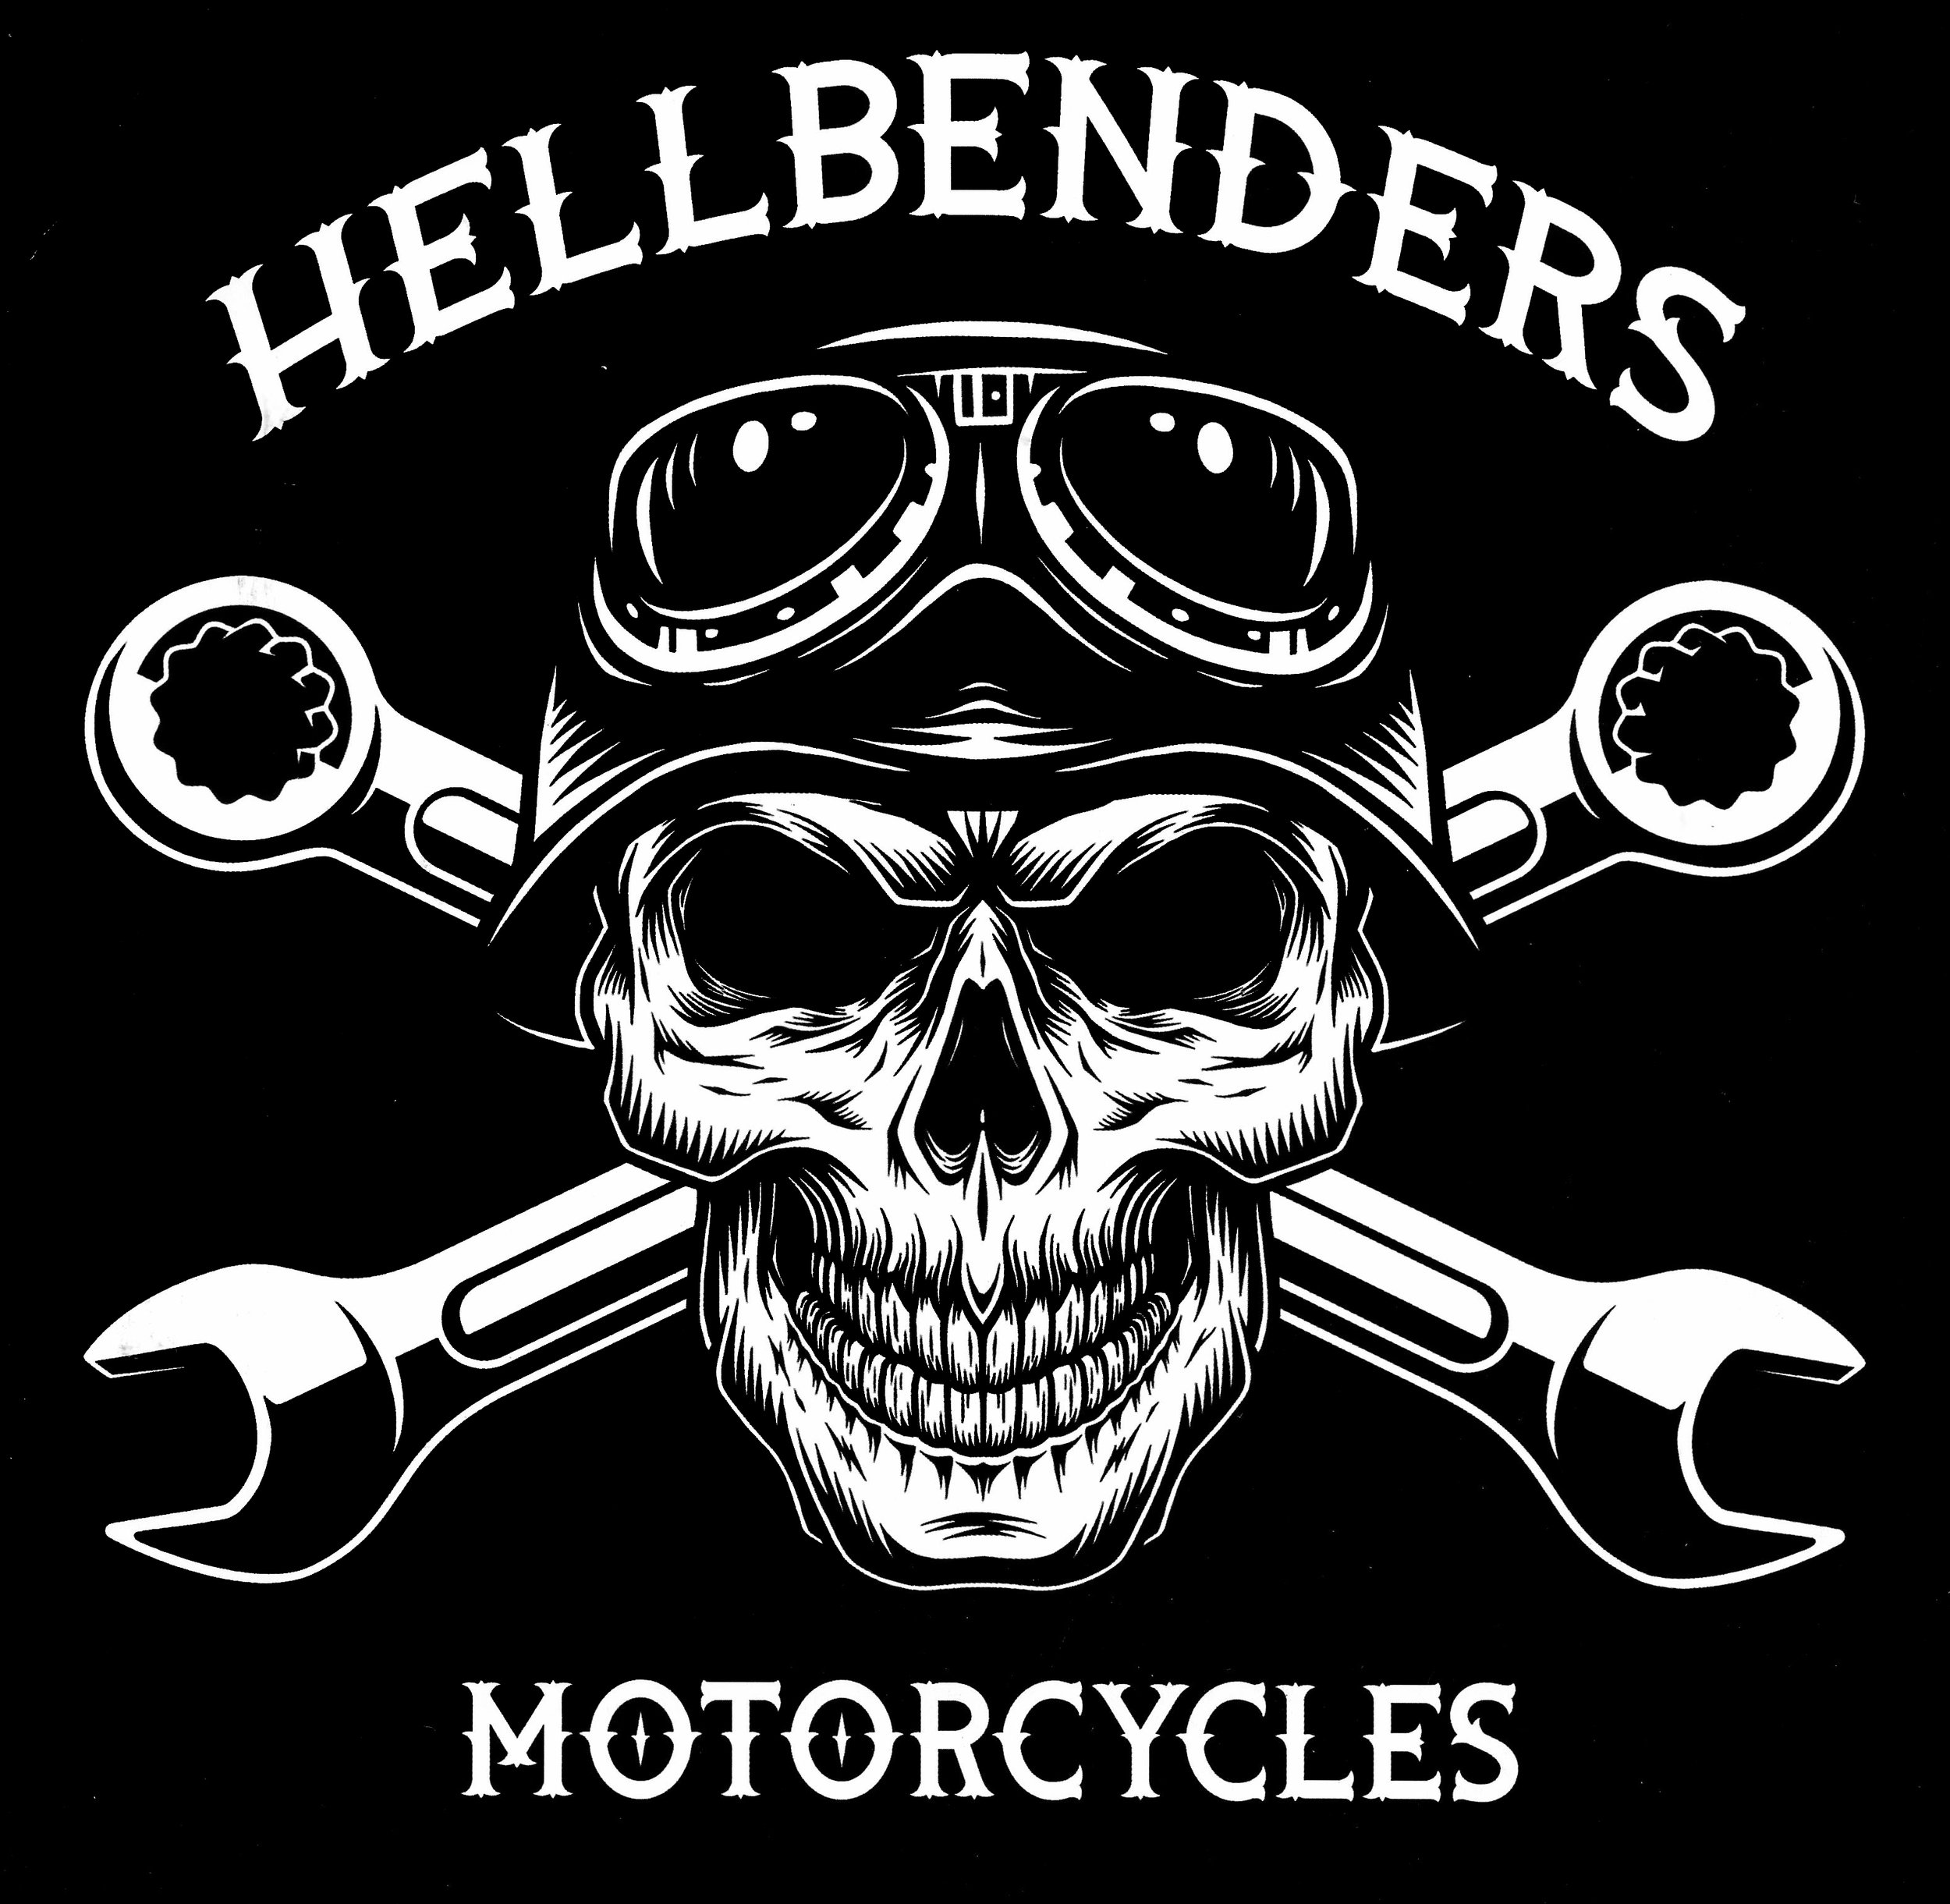 Hellbender Motorcycles logo white on black 2019.JPG